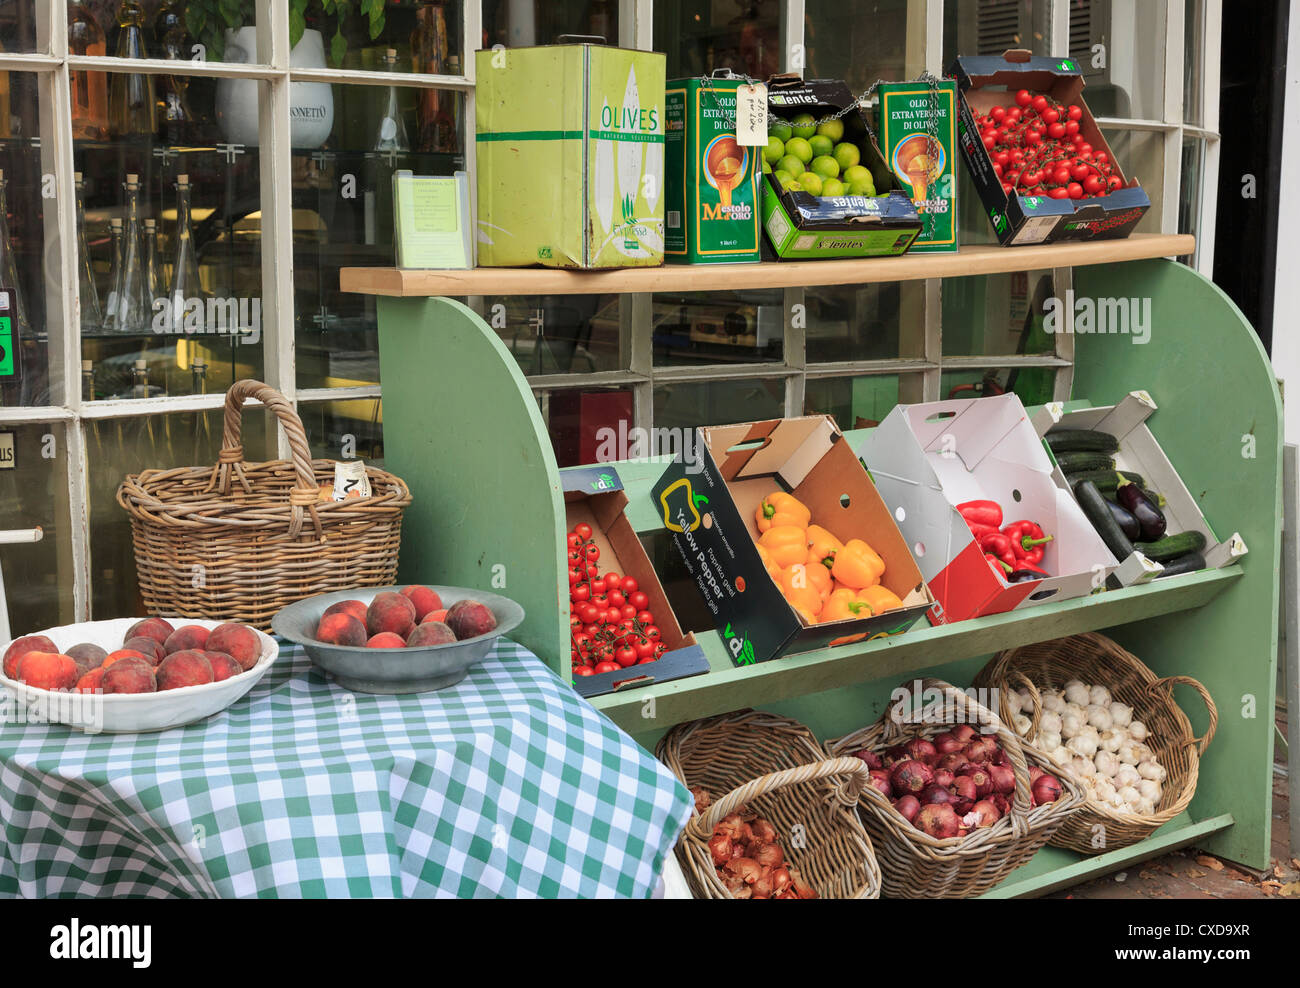 Fresh fruit and vegetables on display outside Gastronomia restaurant and delicatessen in Tunbridge Wells, Kent, - Stock Image